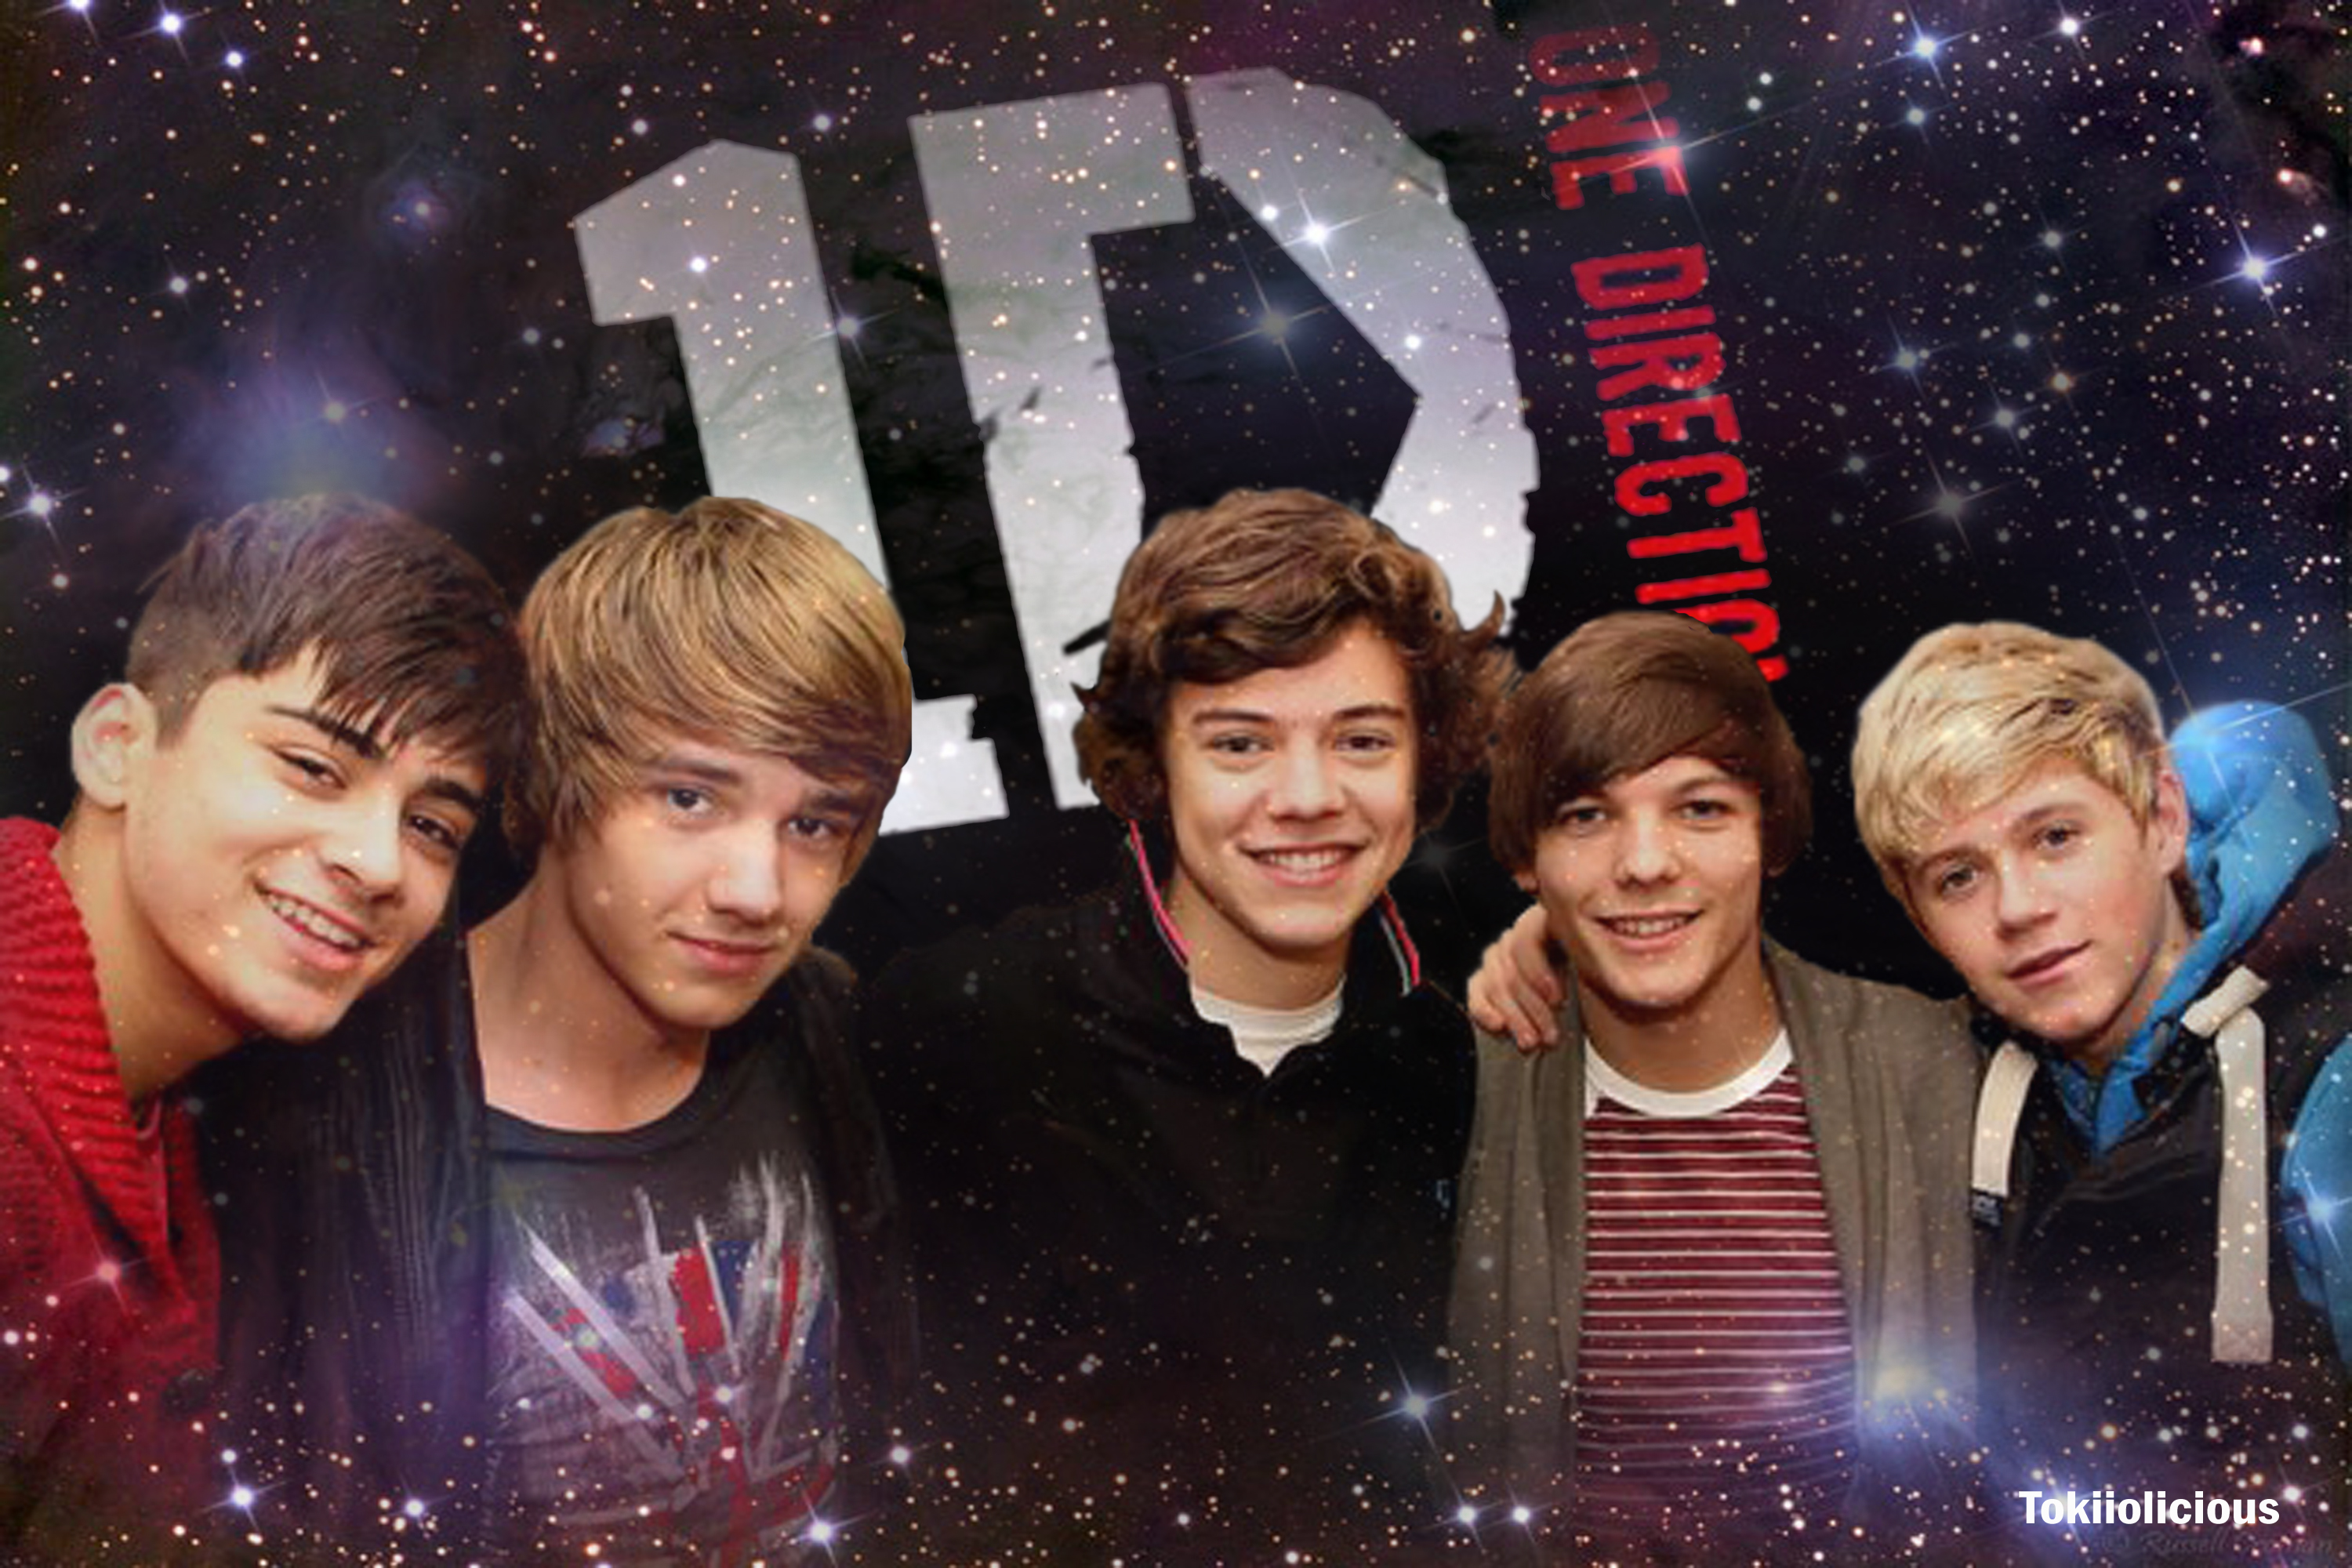 One Direction Wallpaper By Tokiiolicious D4cwnmb